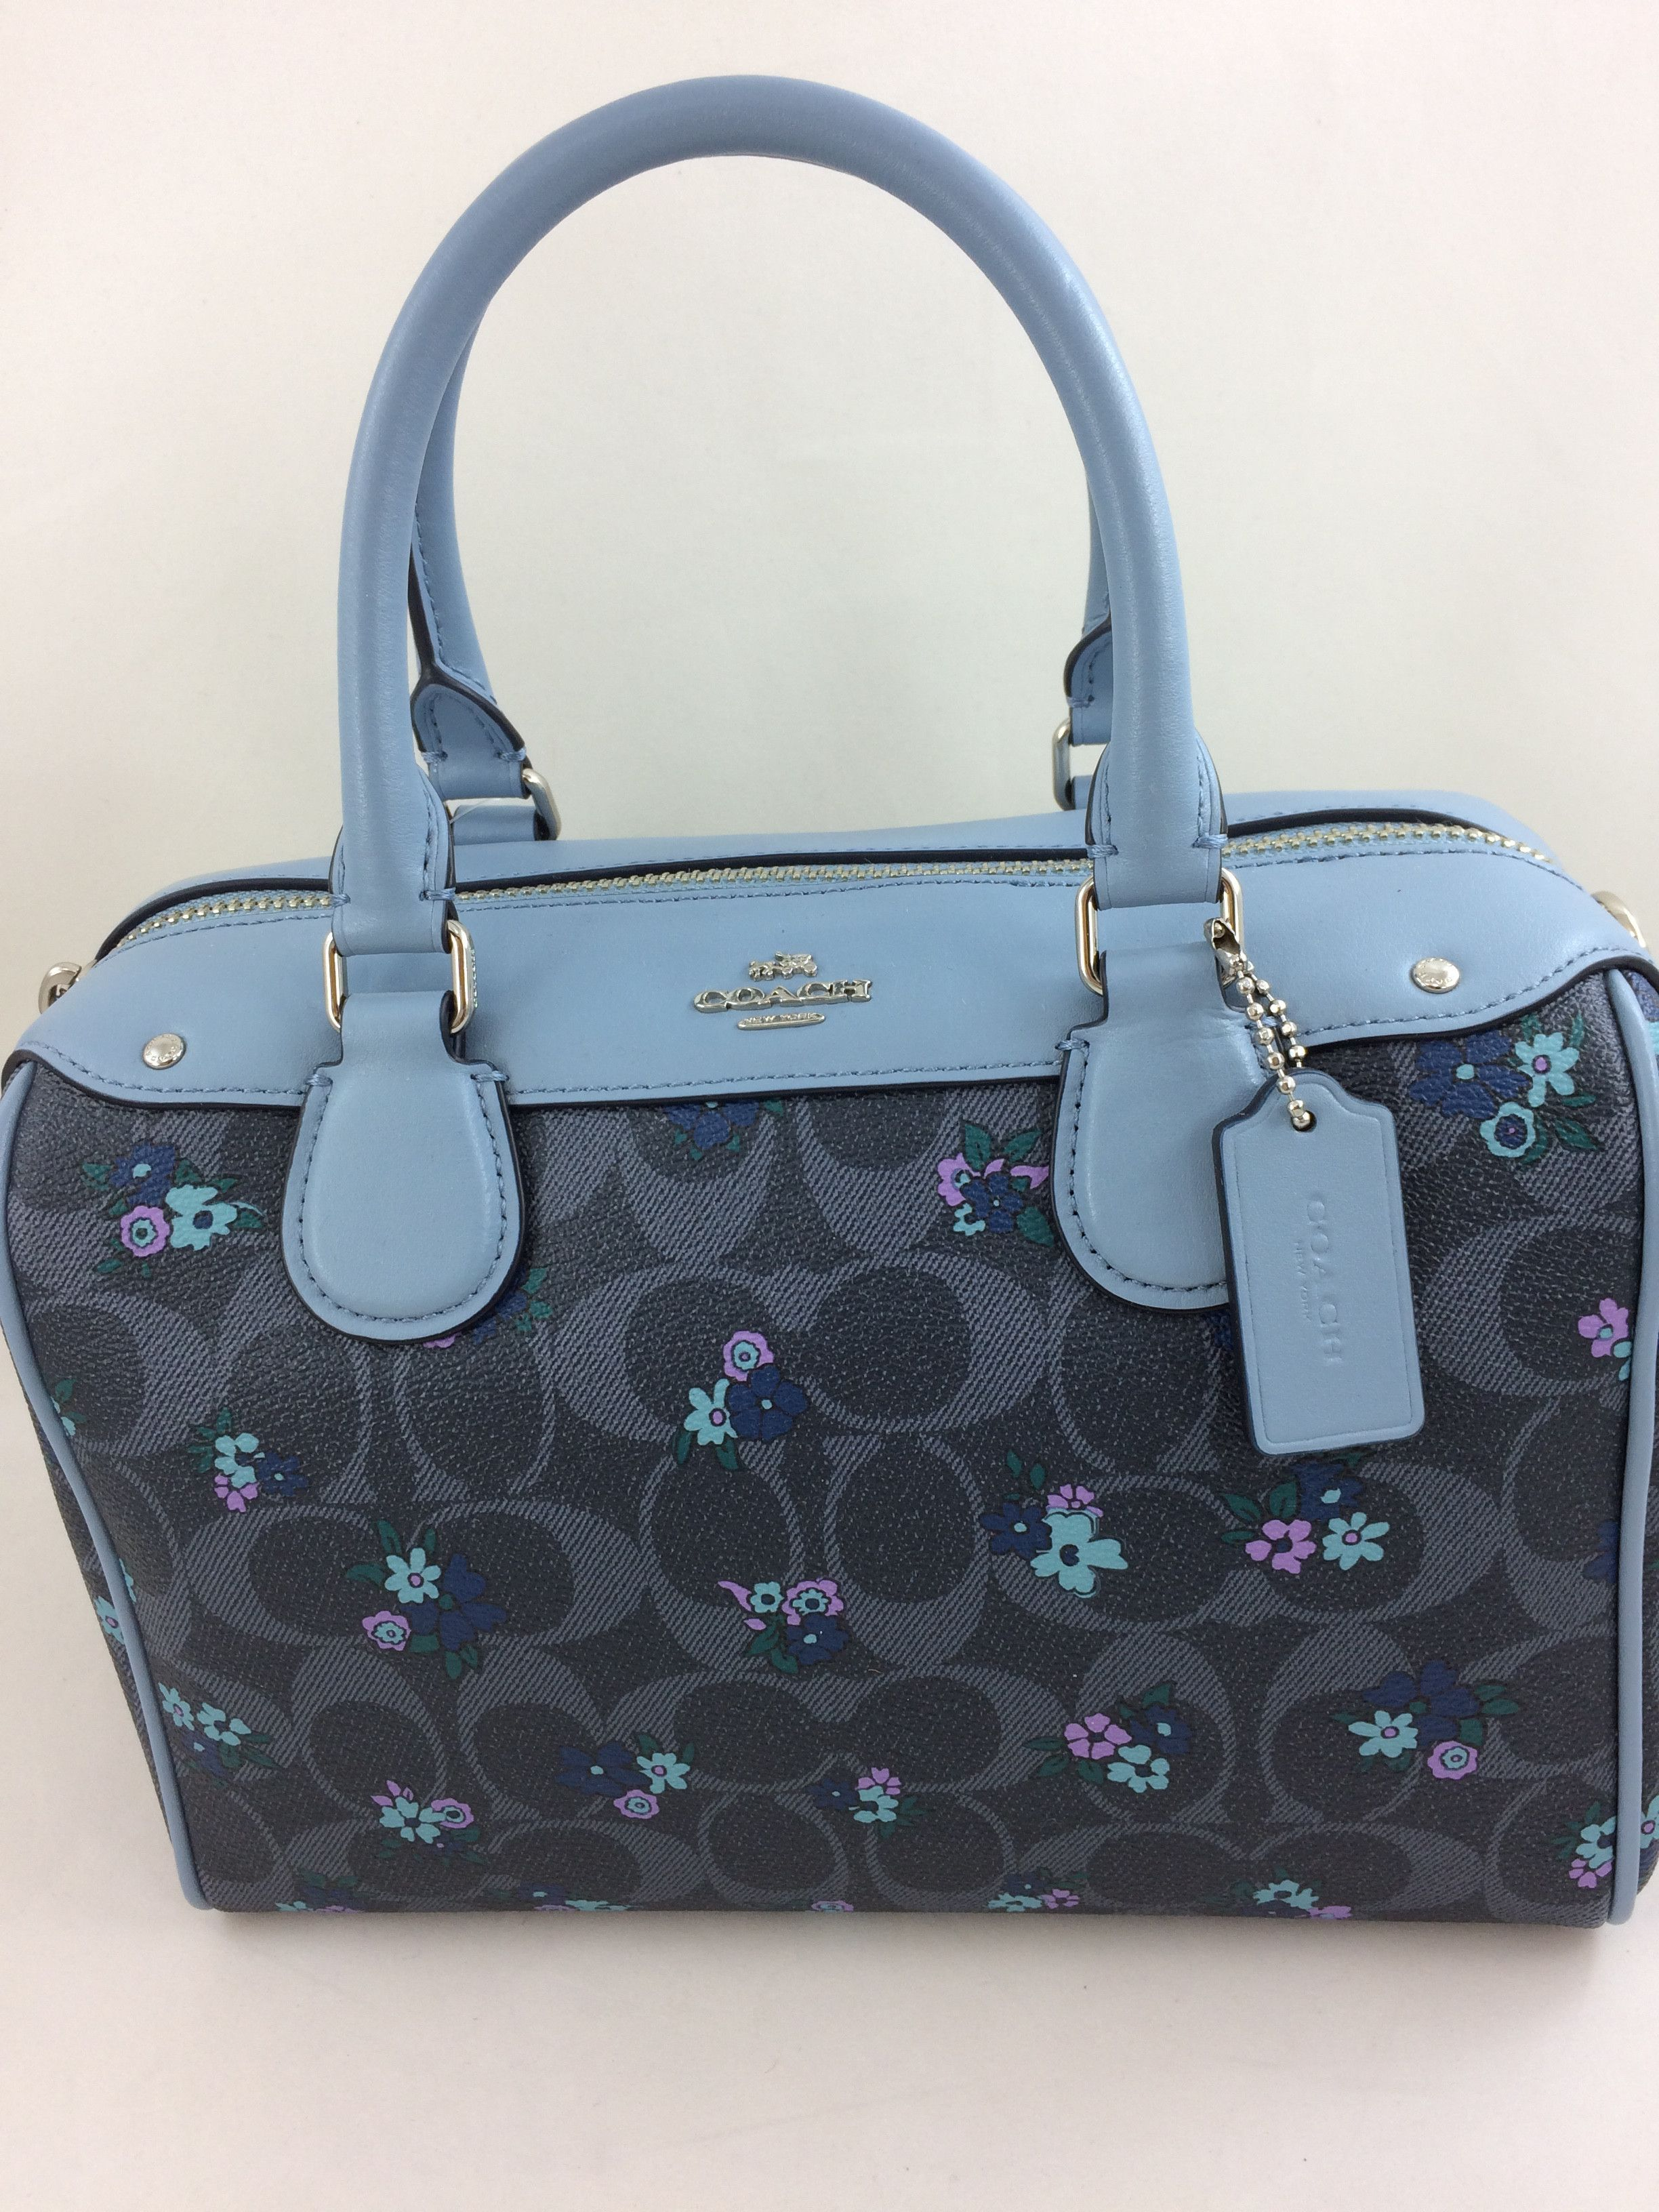 48709d9d769d New Authentic Coach F59461 Mini Bennett Satchel Handbag  Shoulder Bag in  Ranch Floral Print Blue Multi